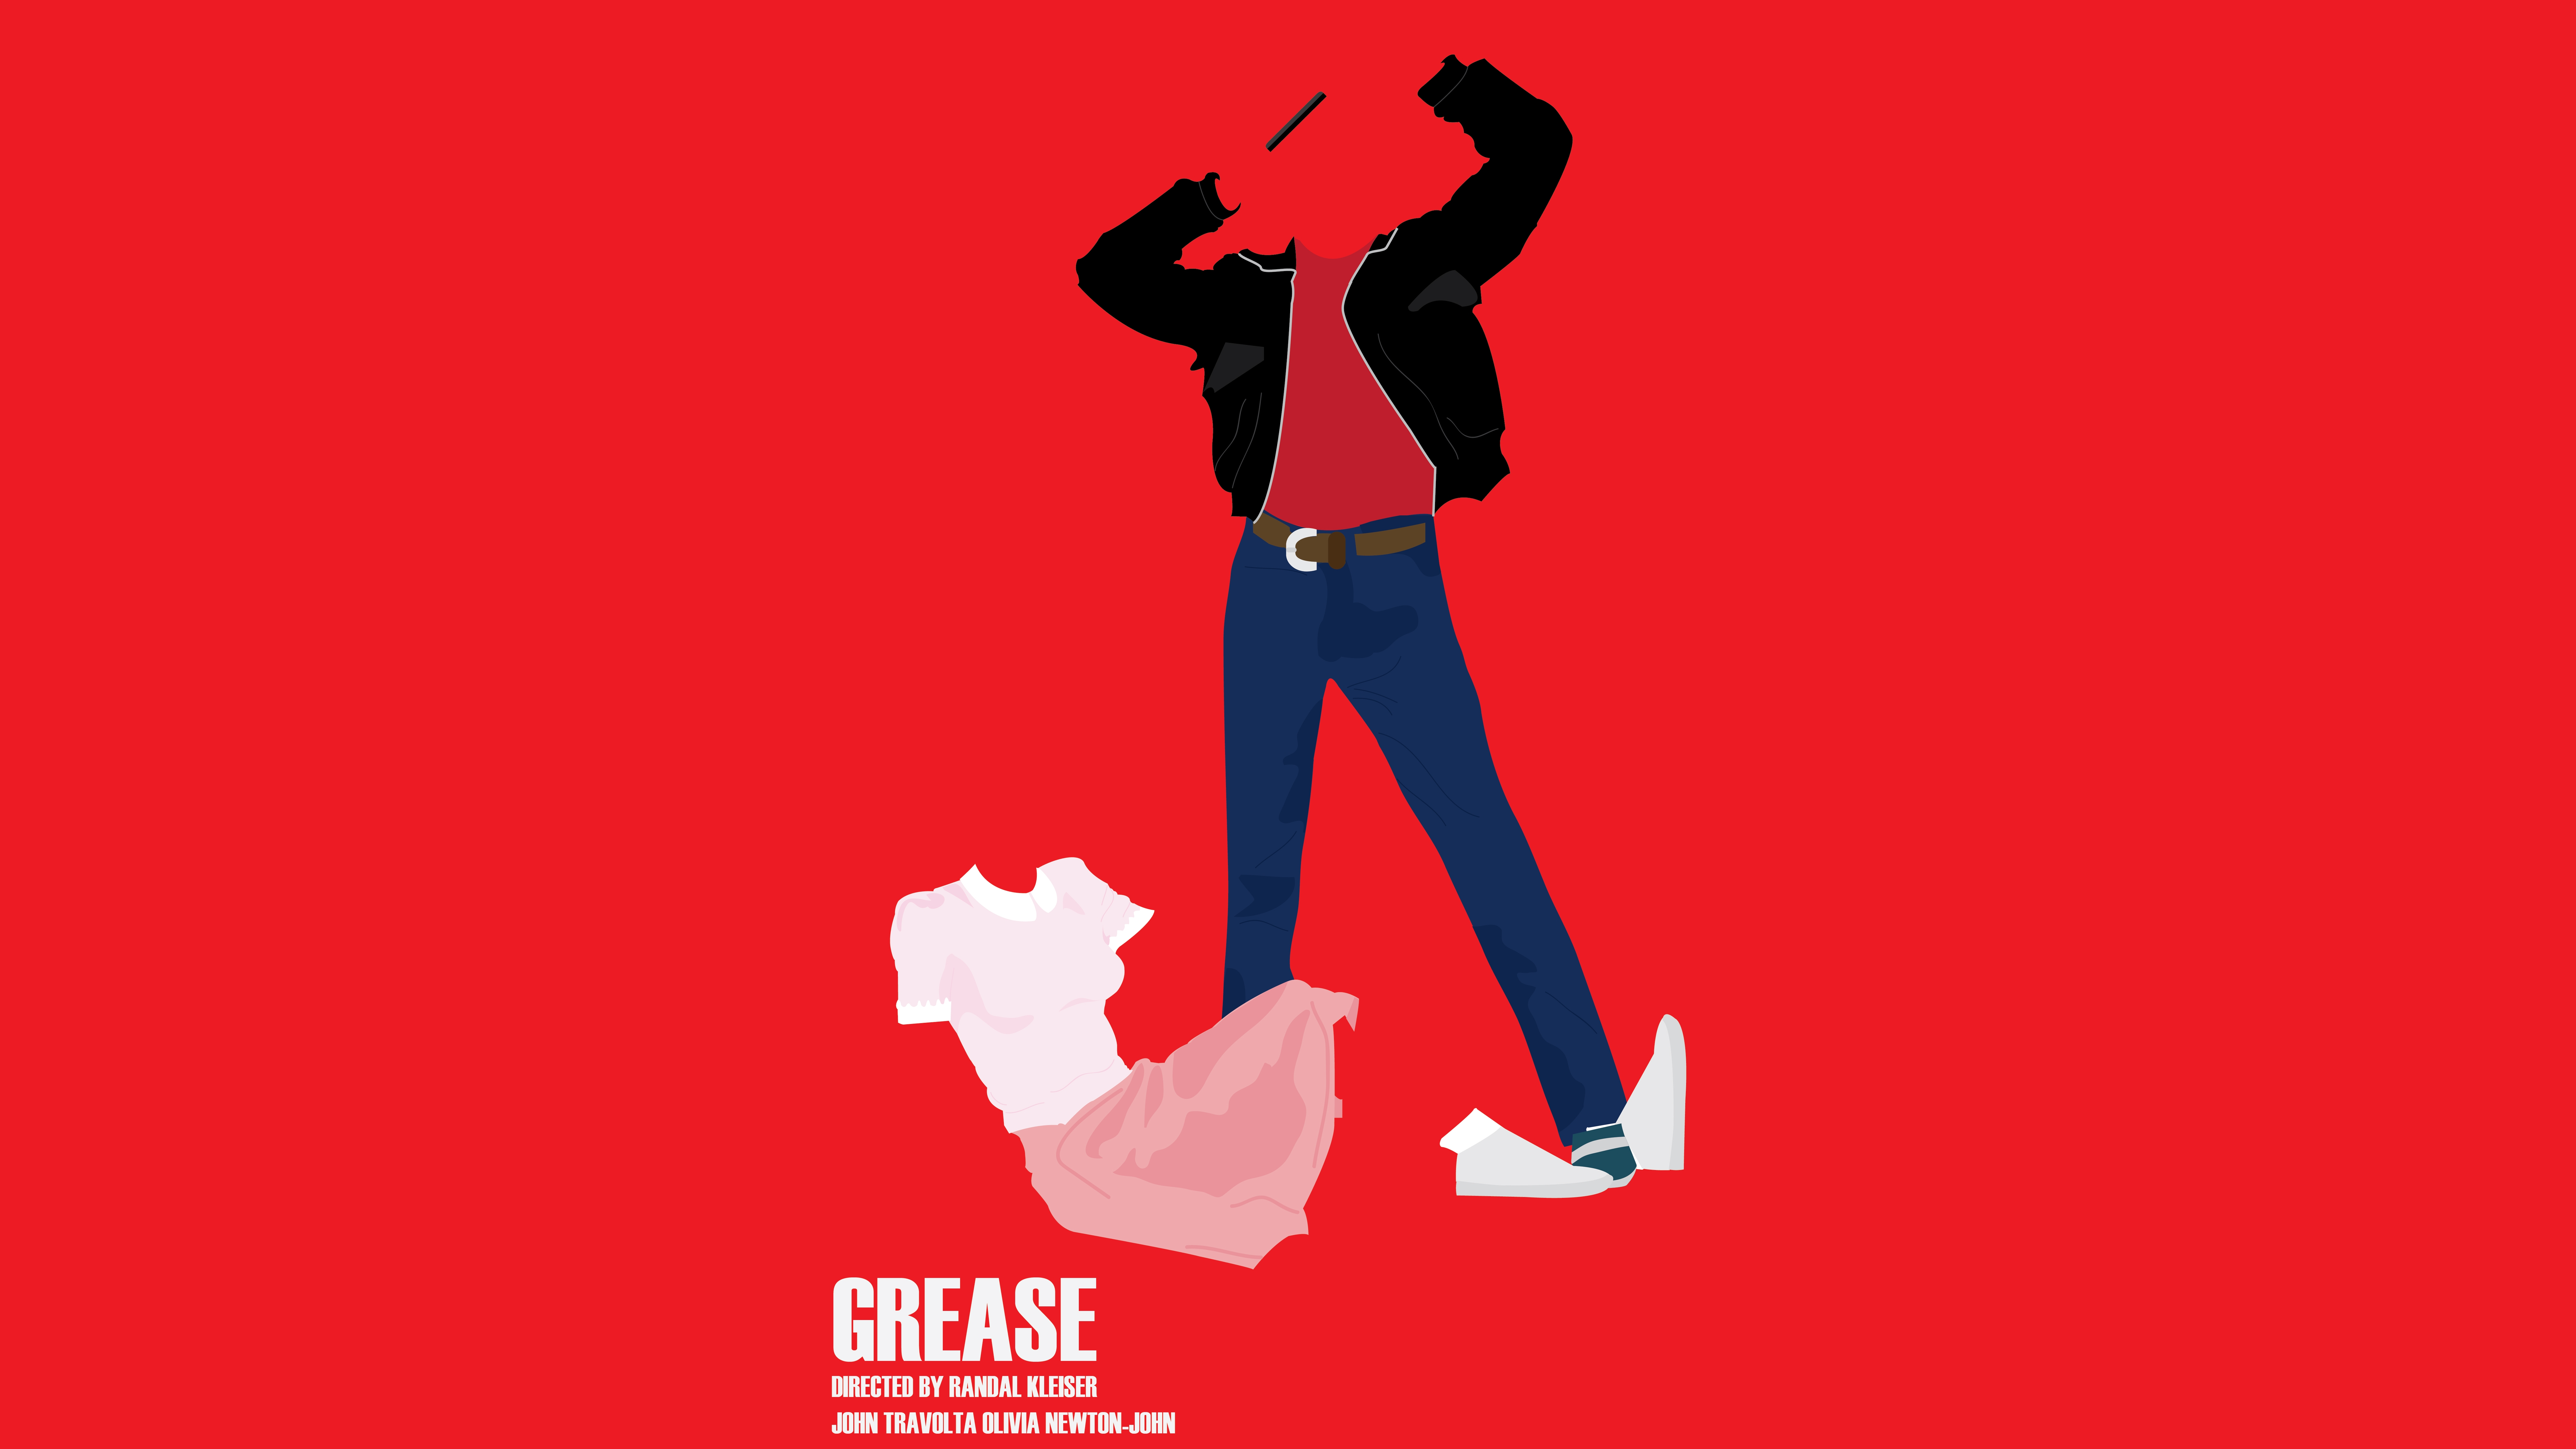 Grease 8k Ultra HD Wallpaper And Background Image